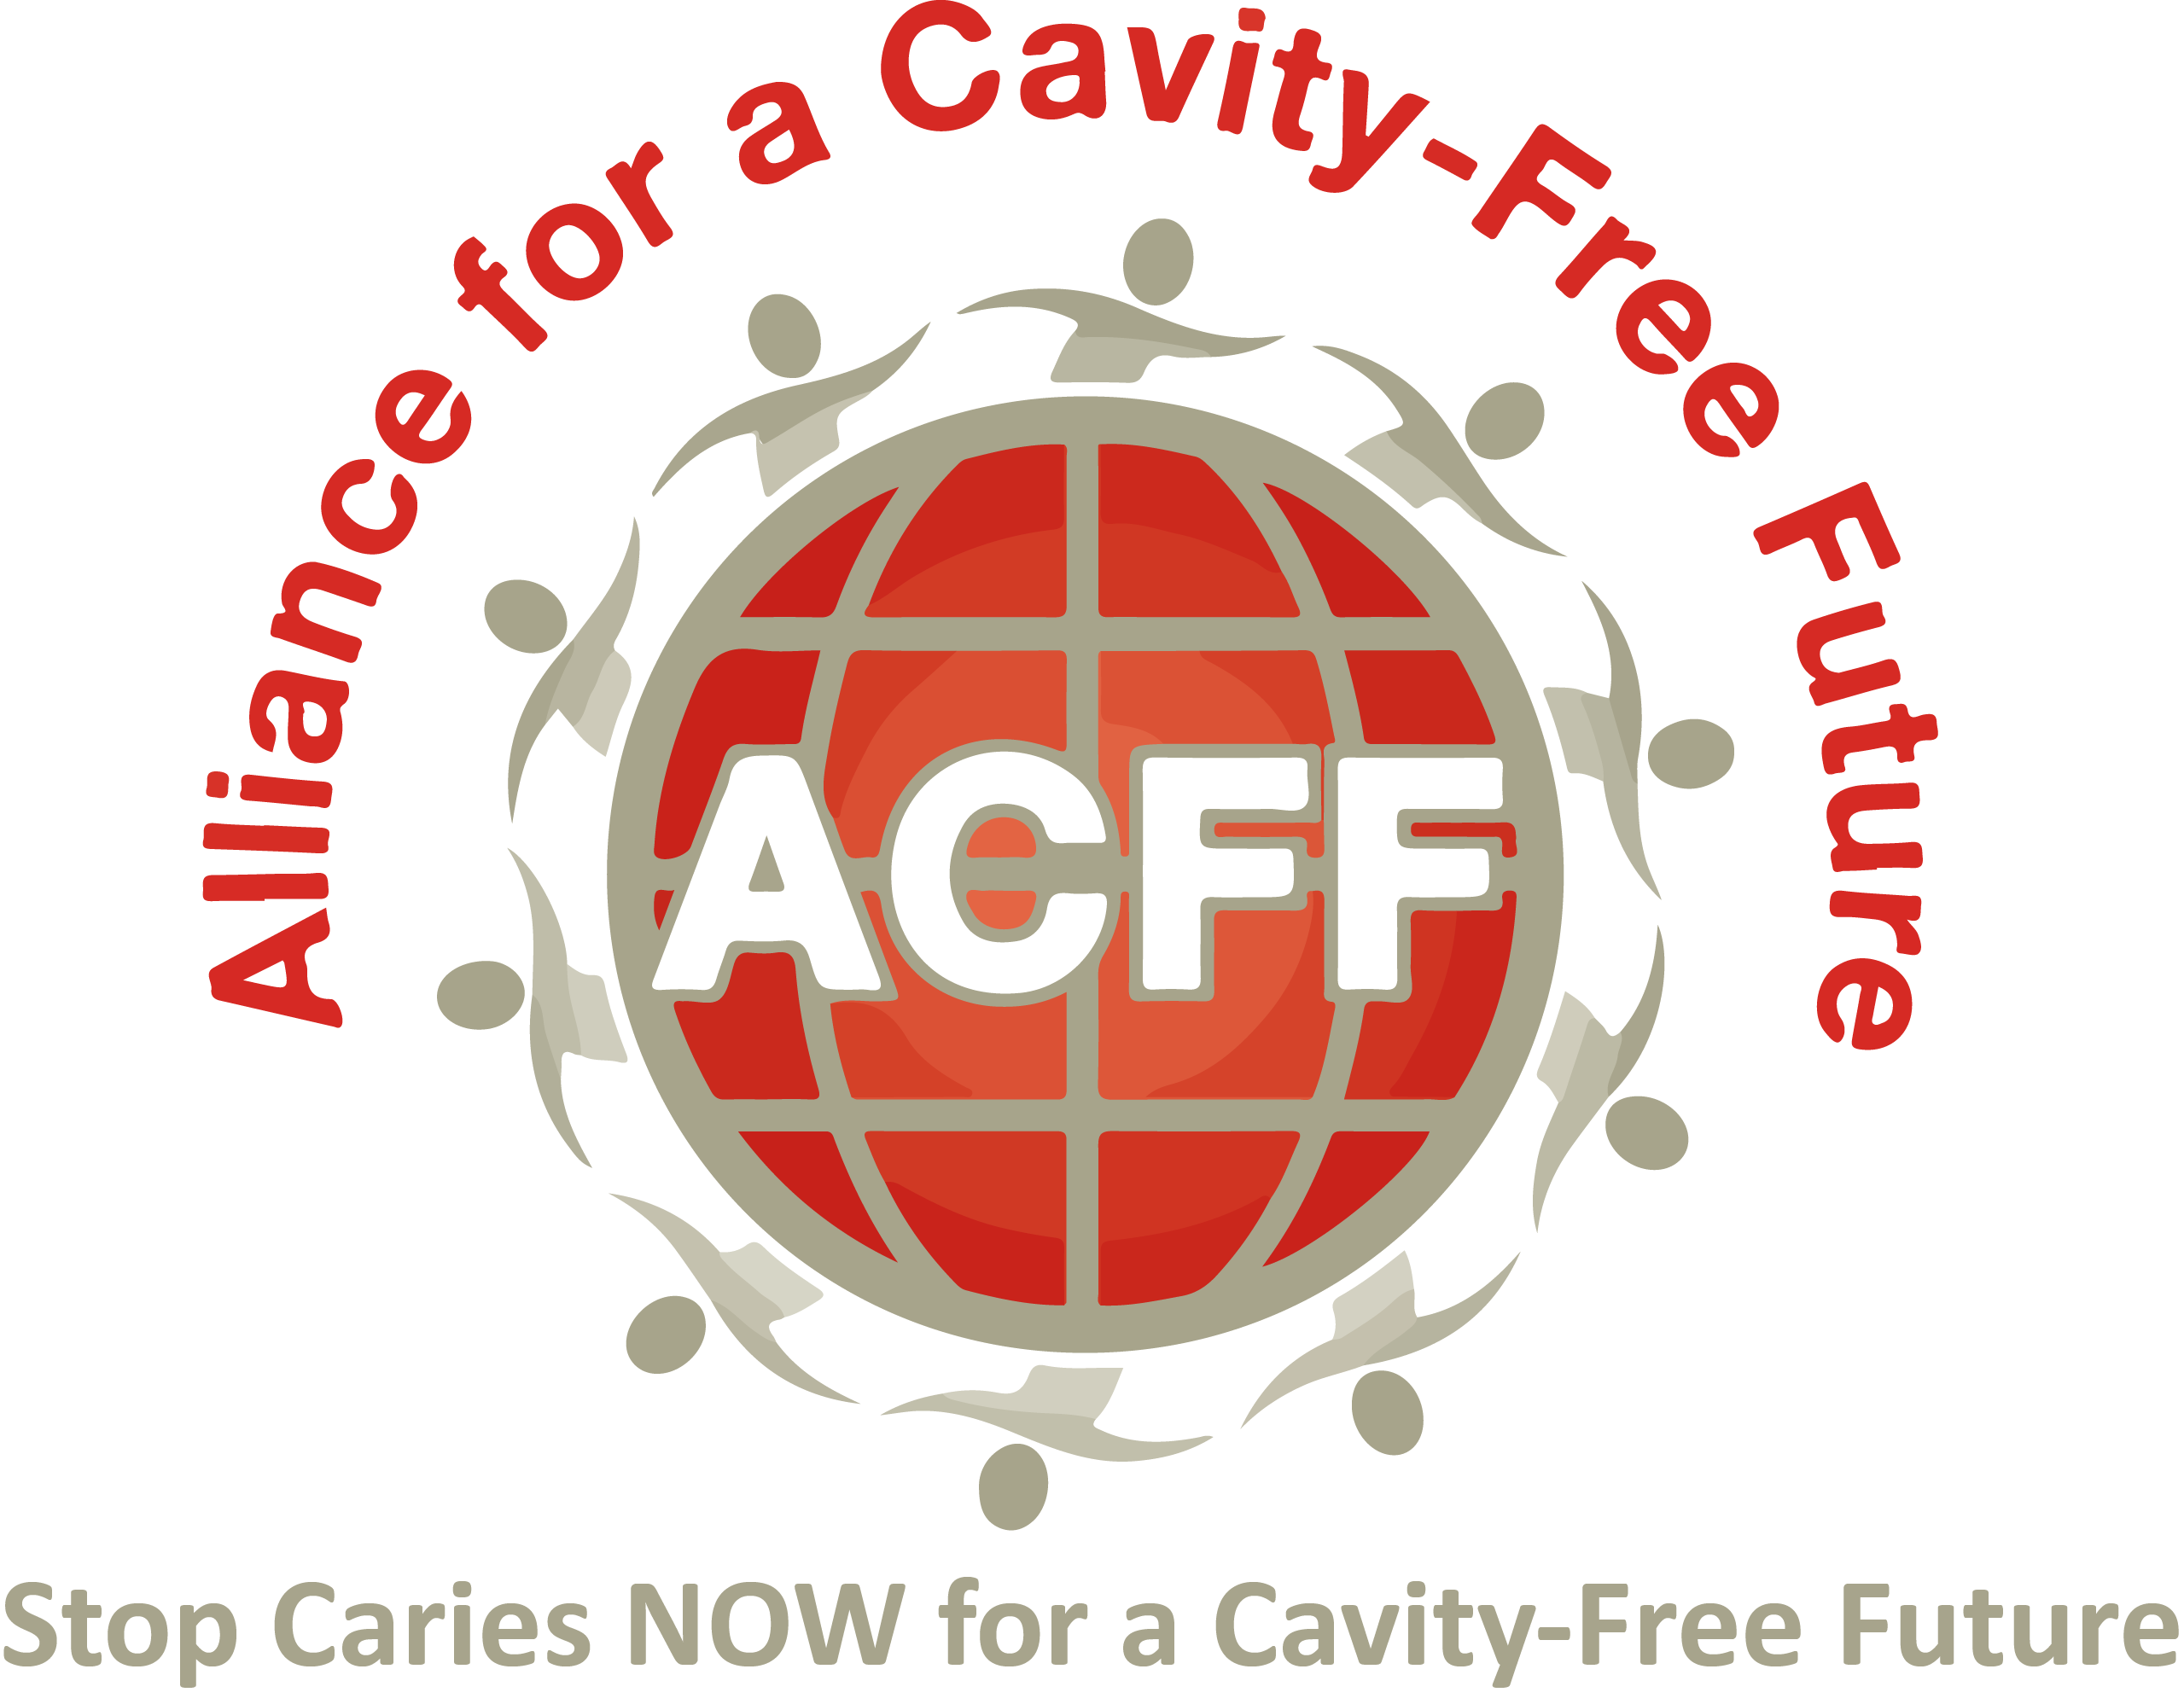 logo for Alliance for a Cavity-Free Future